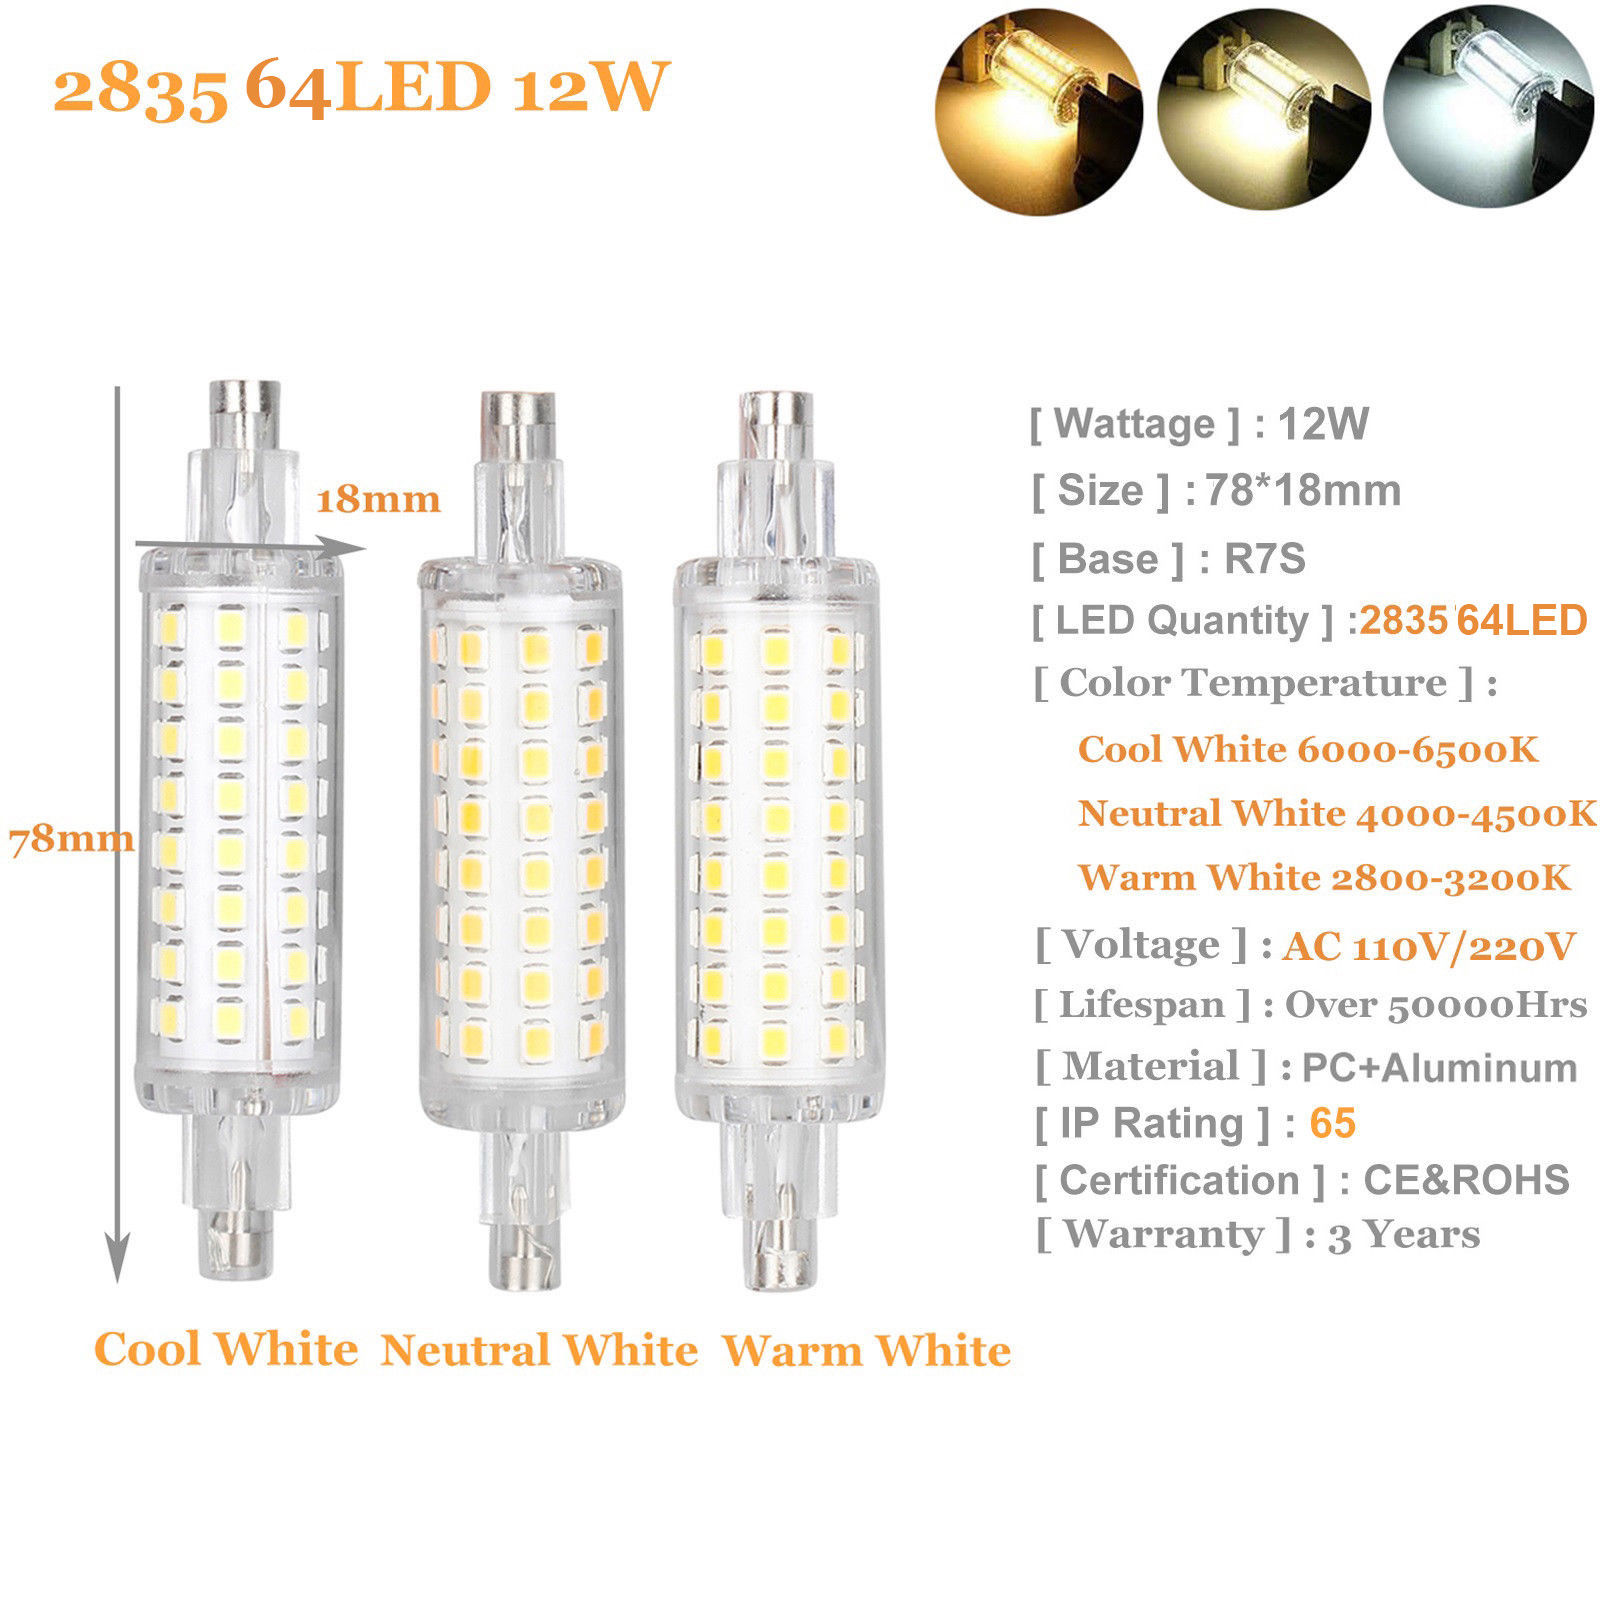 Ranpo R7S 78mm 118mm LED Flood Light Bulb 2835 SMD 12W 16W Replacement Halogen Lamps J78 J118 LED Corn Lamparda r7s 110V 220V